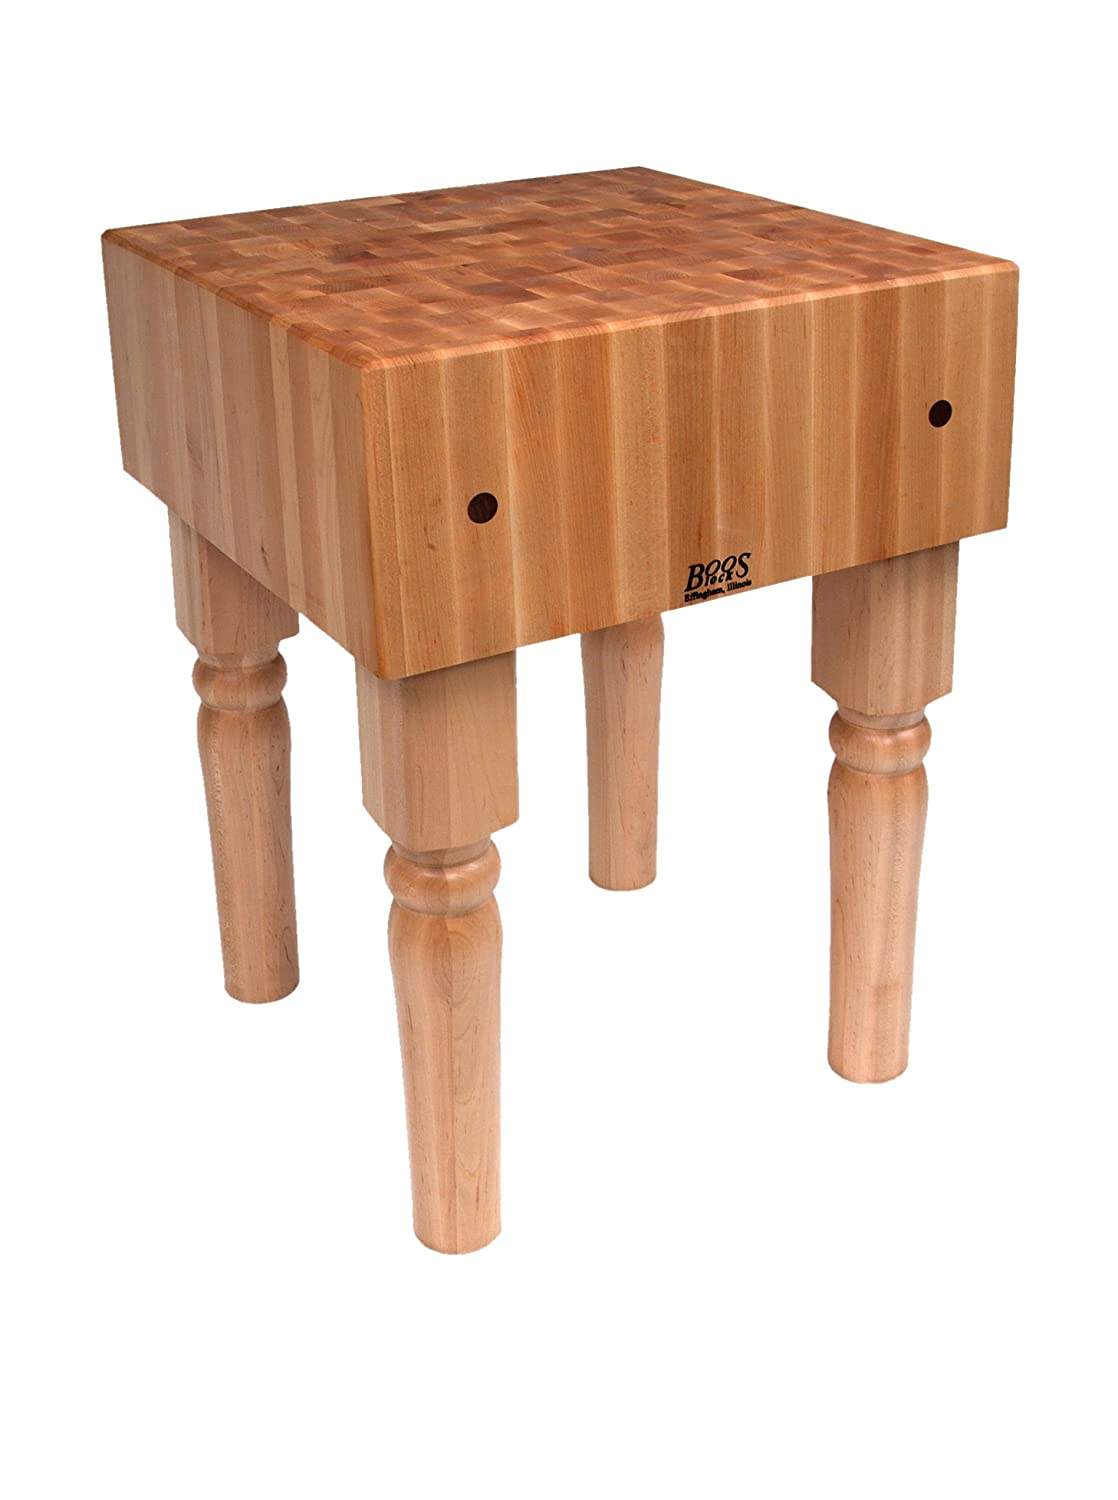 BoosBlock AB Prep Table with Butcher Block Top Size 30 W x 24 D